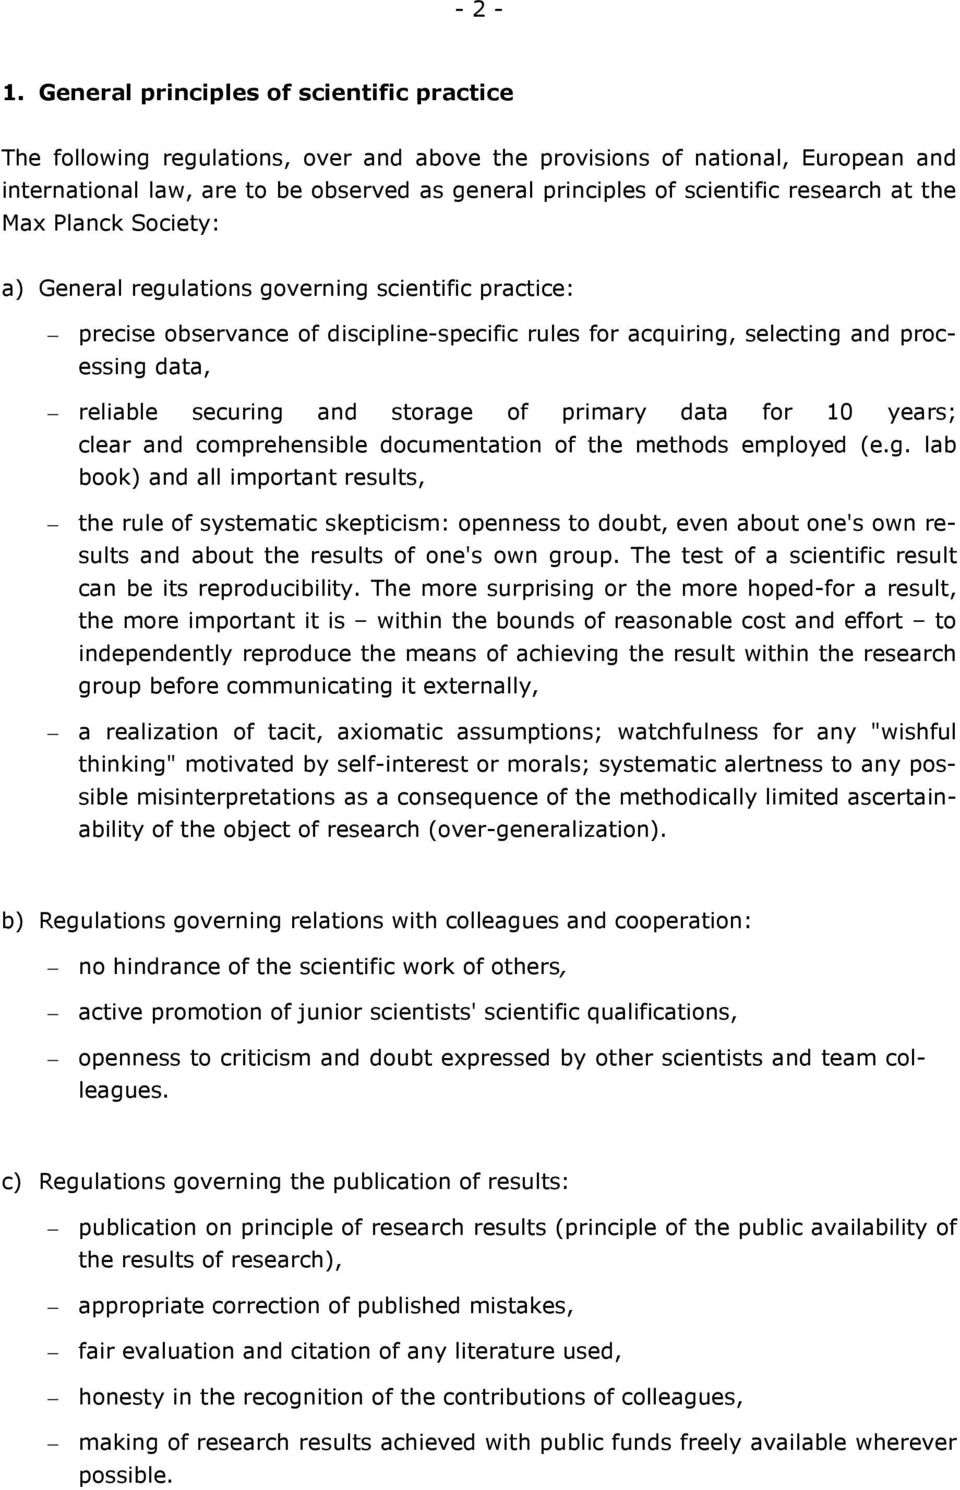 research at the Max Planck Society: a) General regulations governing scientific practice: precise observance of discipline-specific rules for acquiring, selecting and processing data, reliable